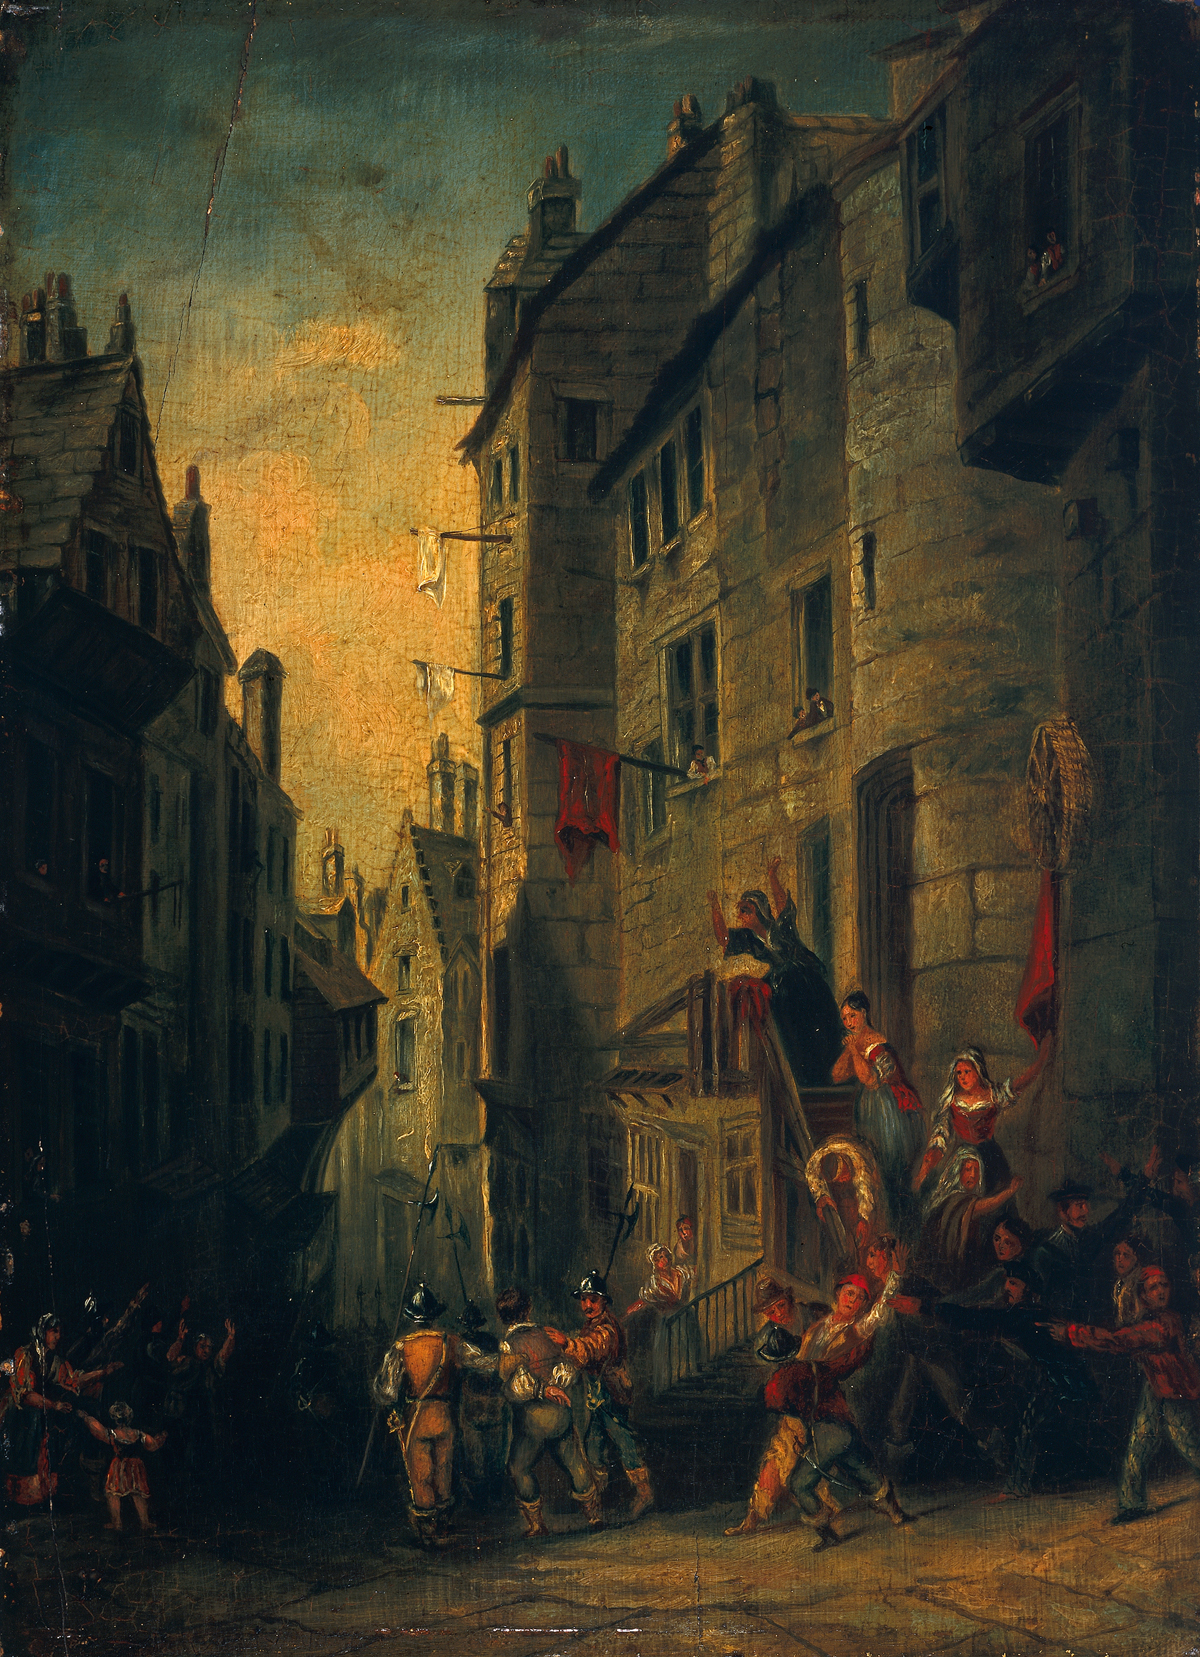 http://upload.wikimedia.org/wikipedia/commons/1/15/Condemned_Covenanters_on_Their_Way_to_Execution_in_the_West_Bow%2C_Edinburgh.jpg